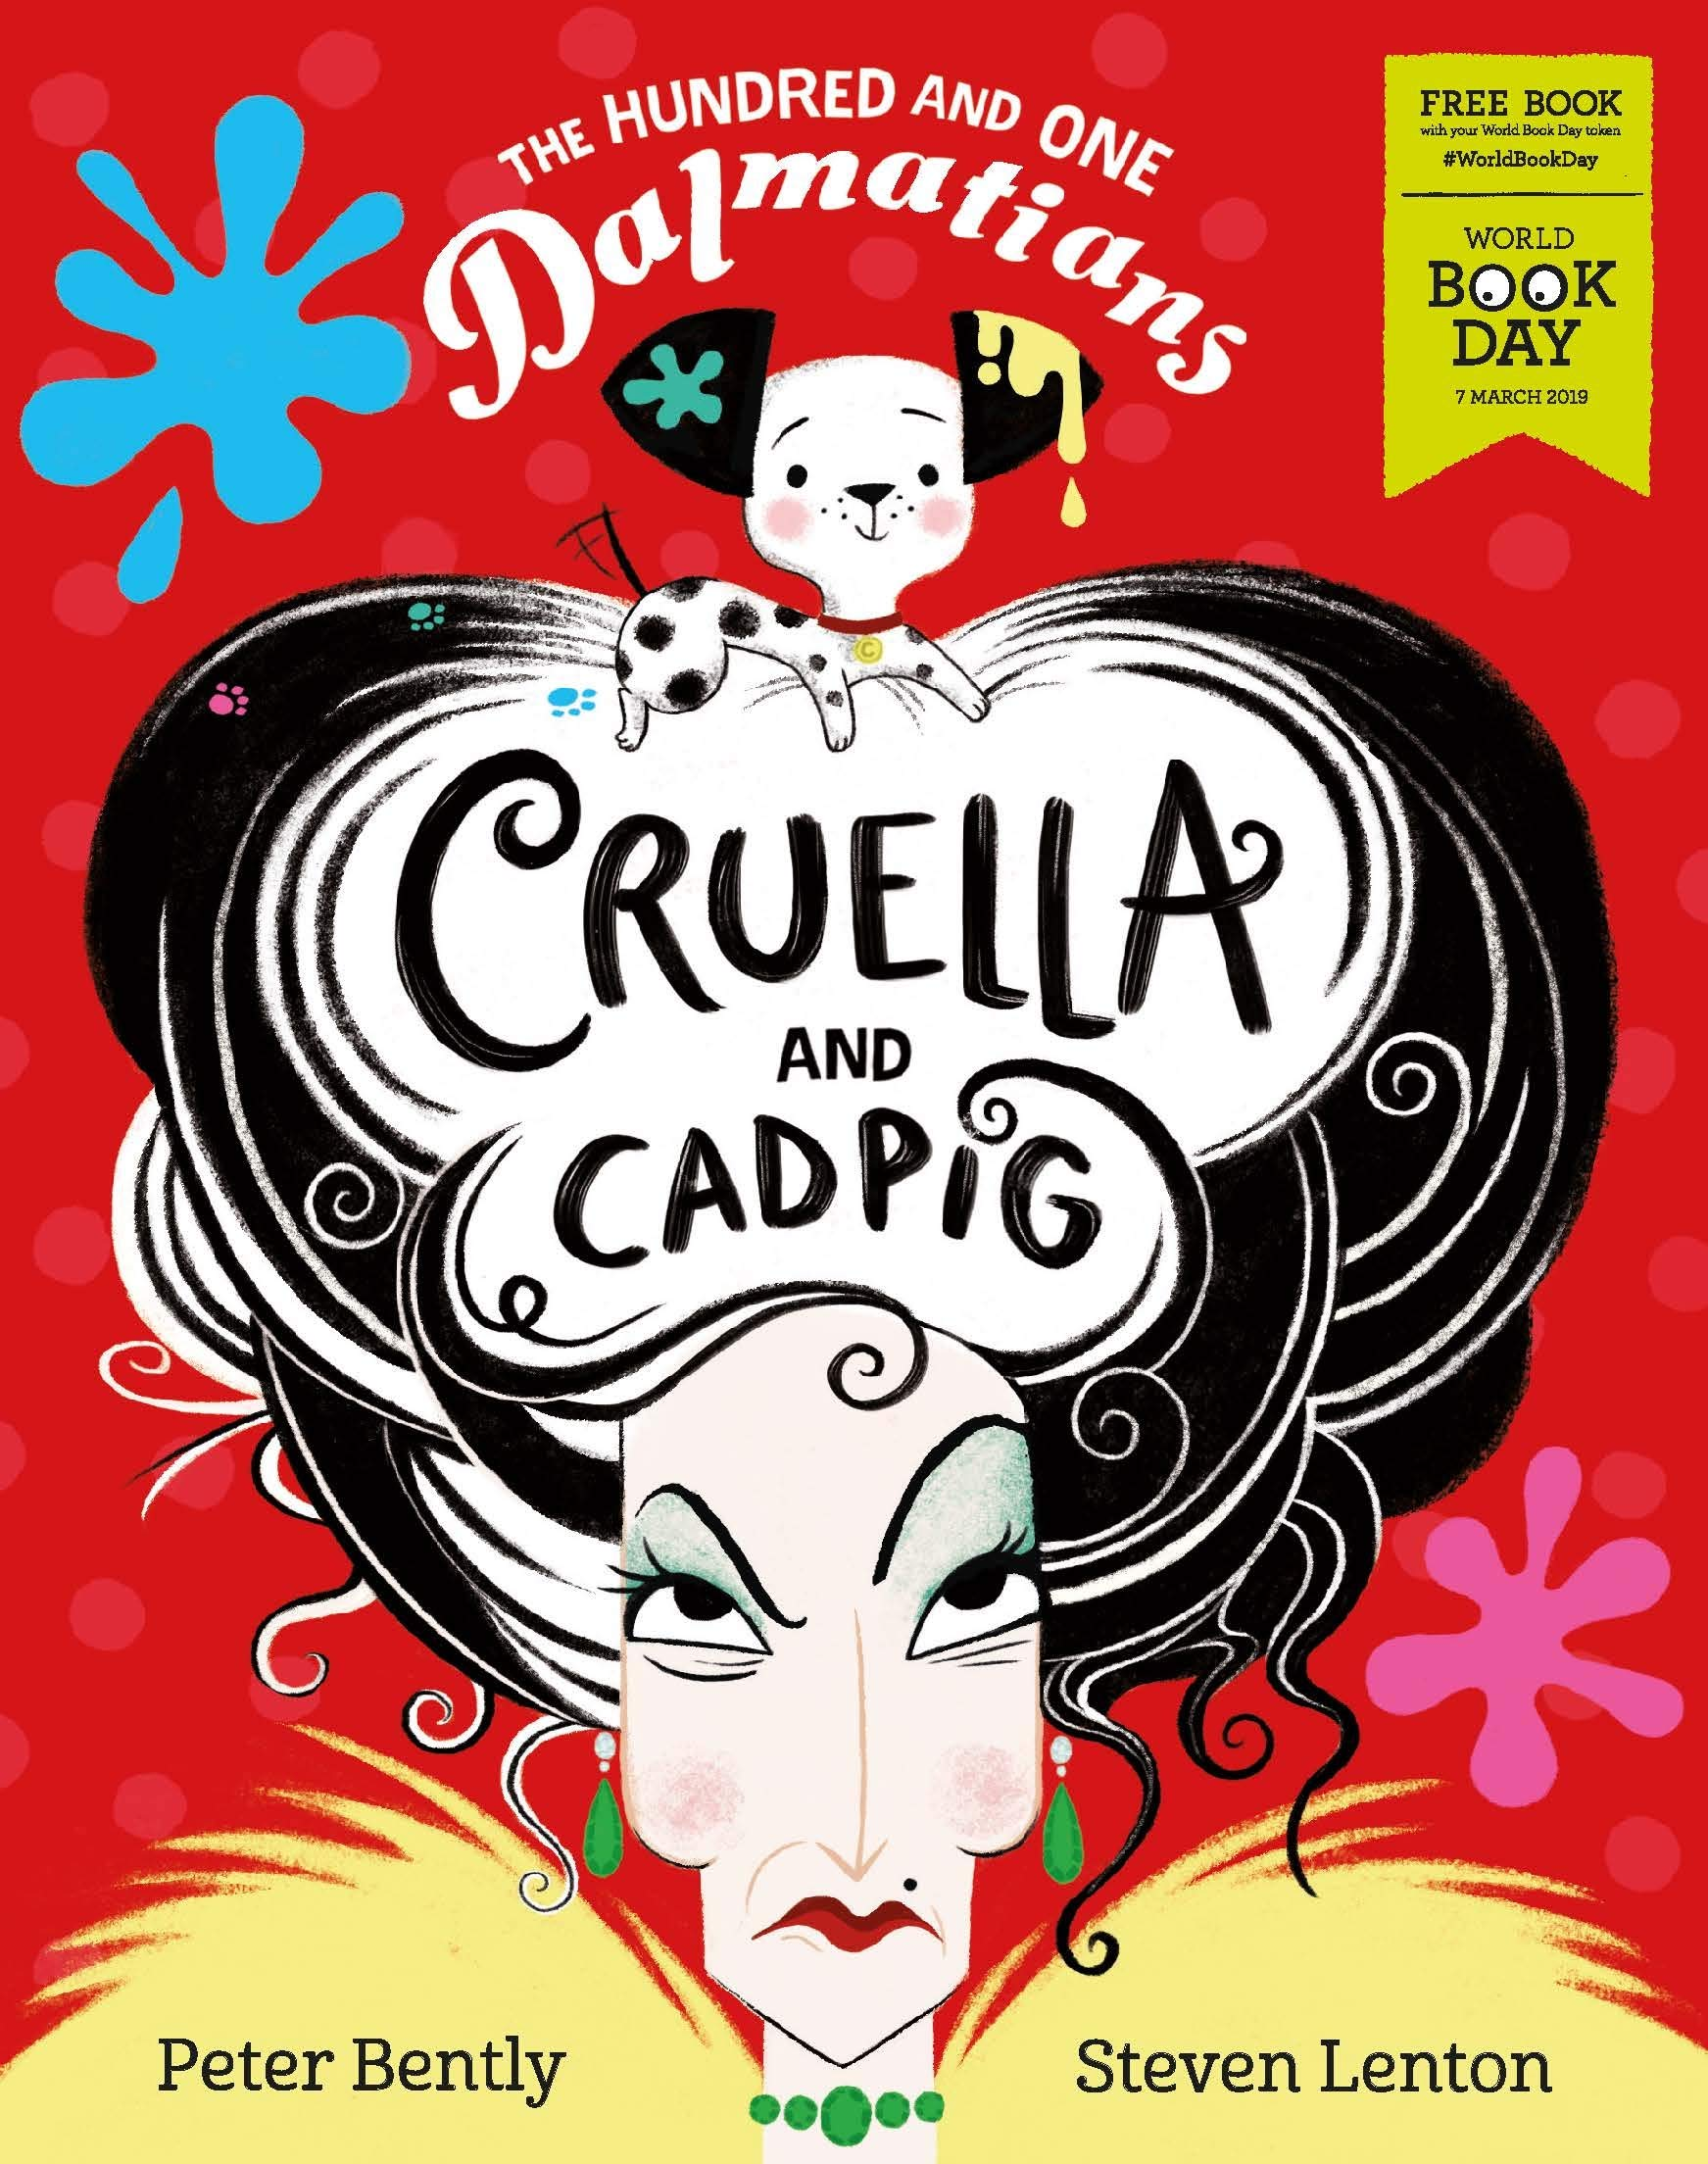 The Hundred and One Dalmatians: Cruella and Cadpig – World Book Day 2019